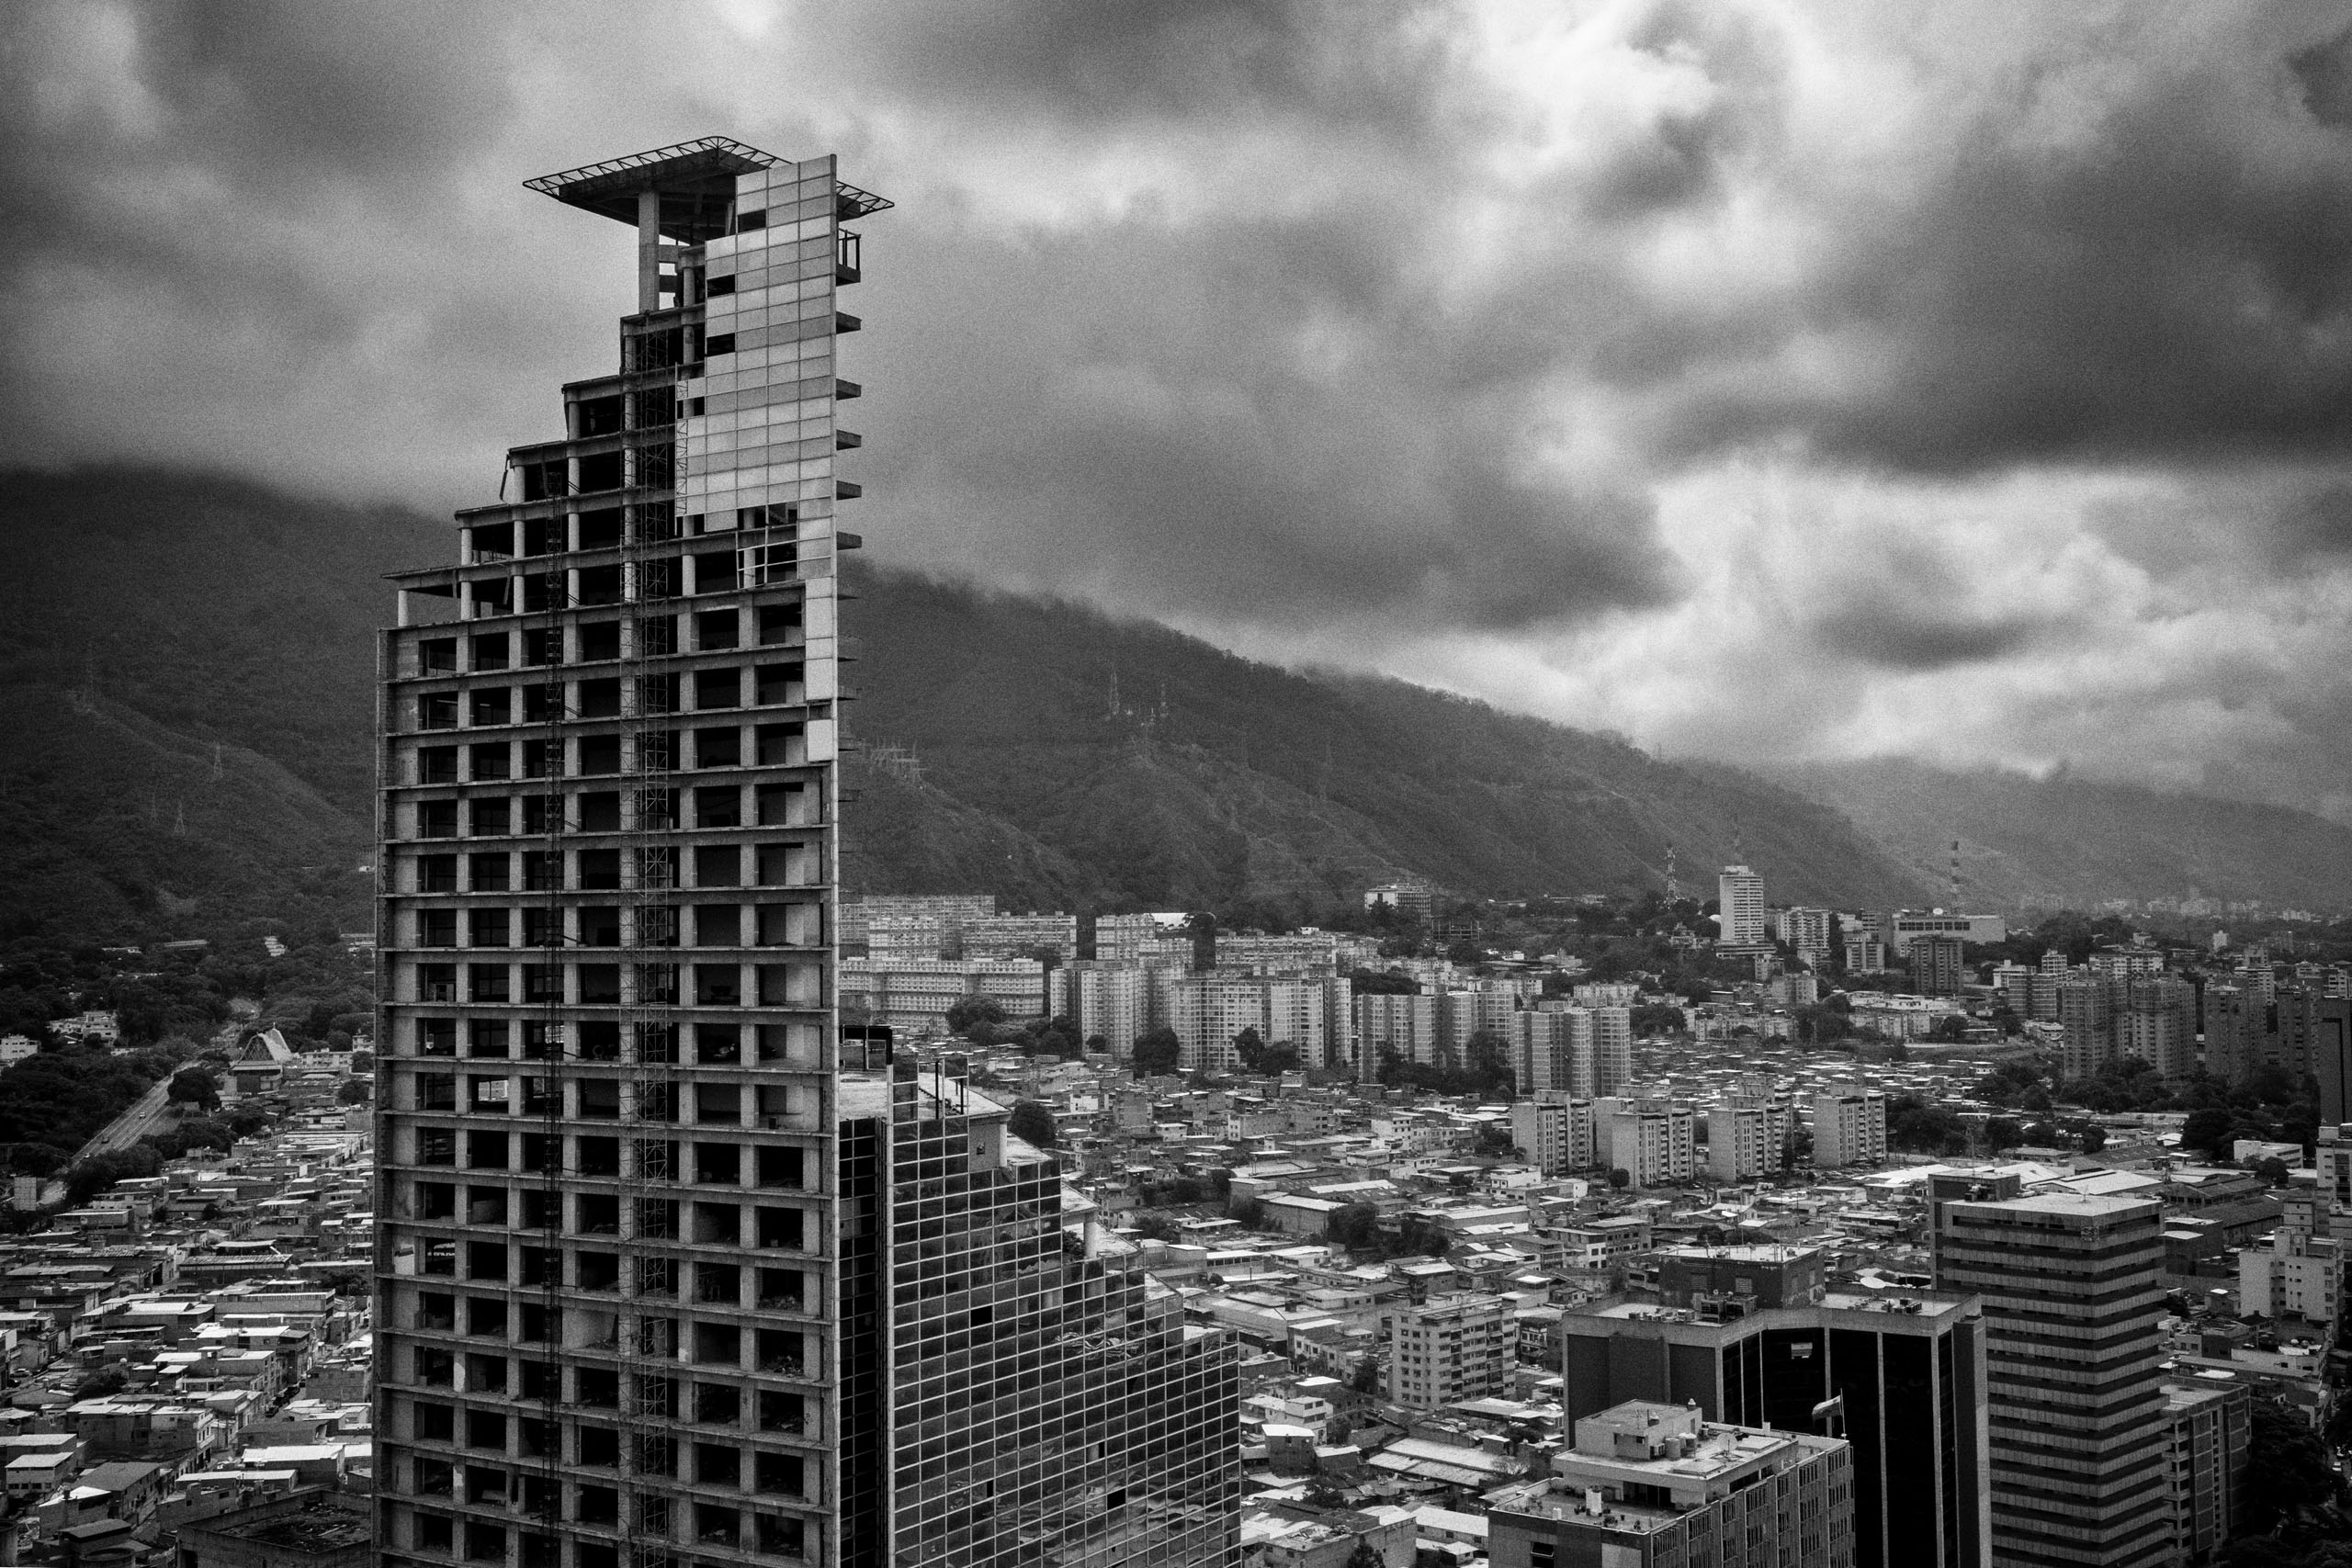 The Tower of David in Caracas was the worlds largest vertical slum, until its inhabitants were evicted. Insecurity and violence plagues the neighboring district around the tower, July  2015